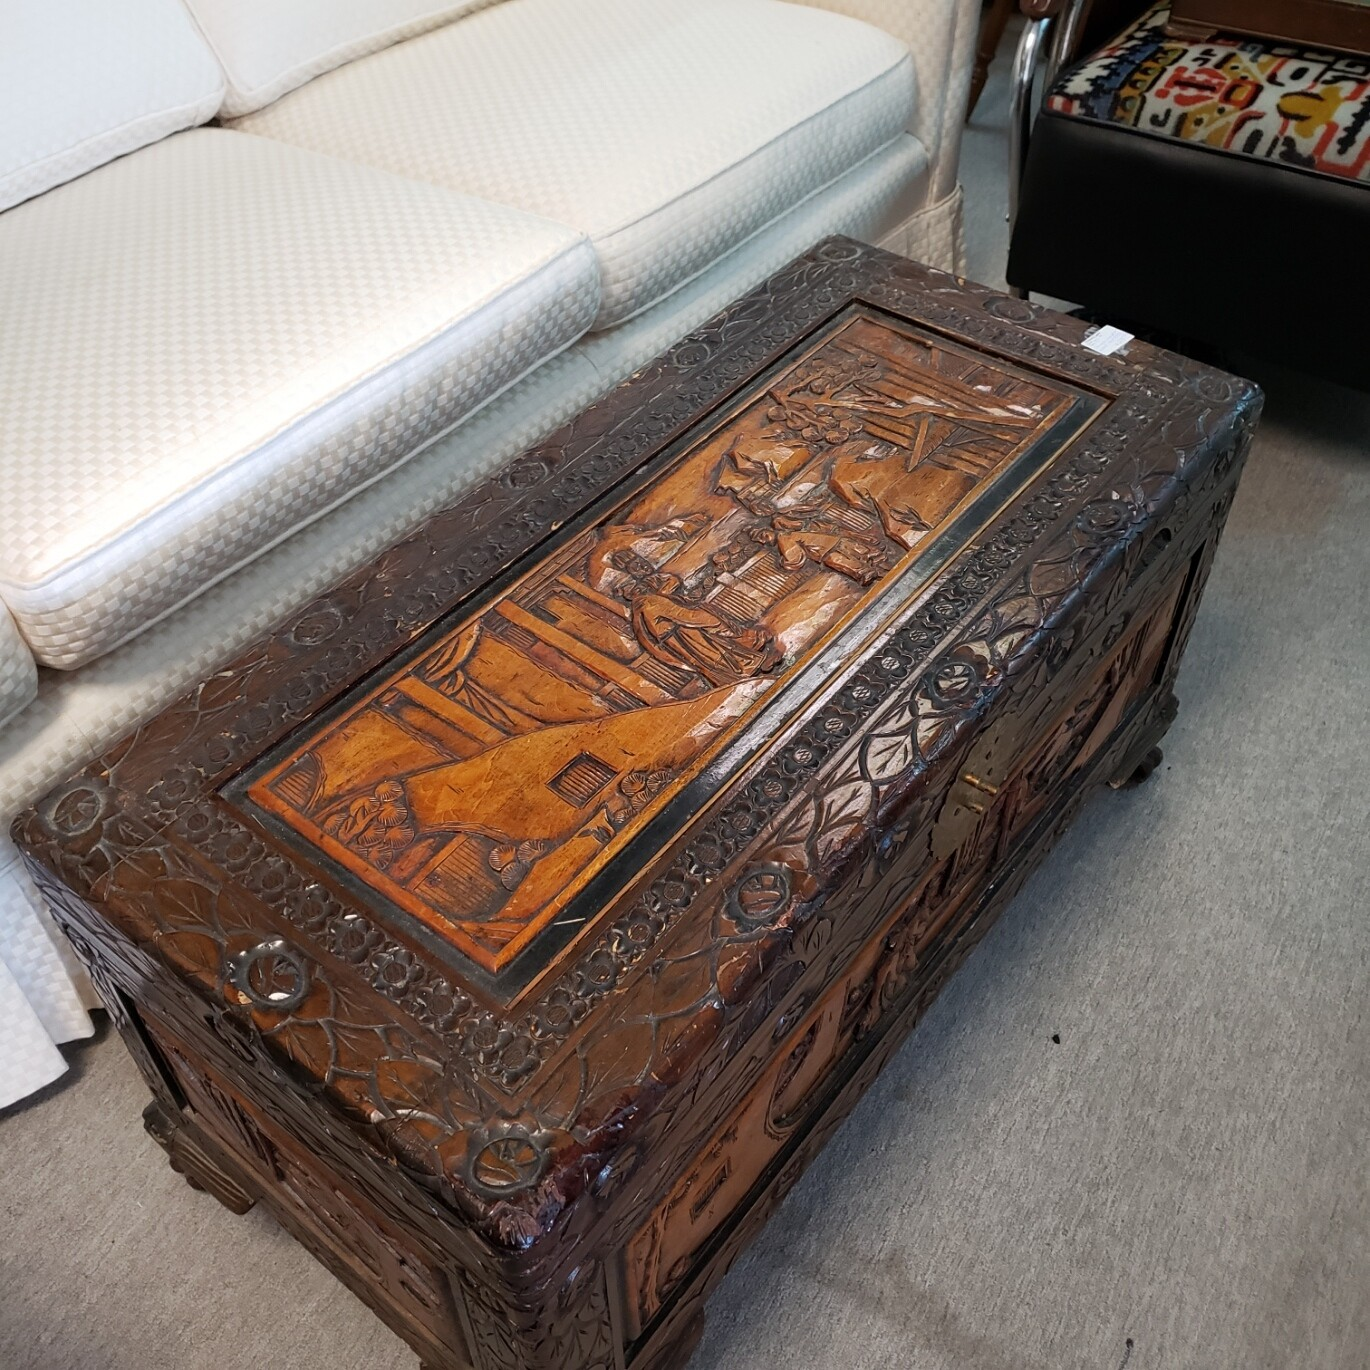 Camphor Chest with ornate carvings